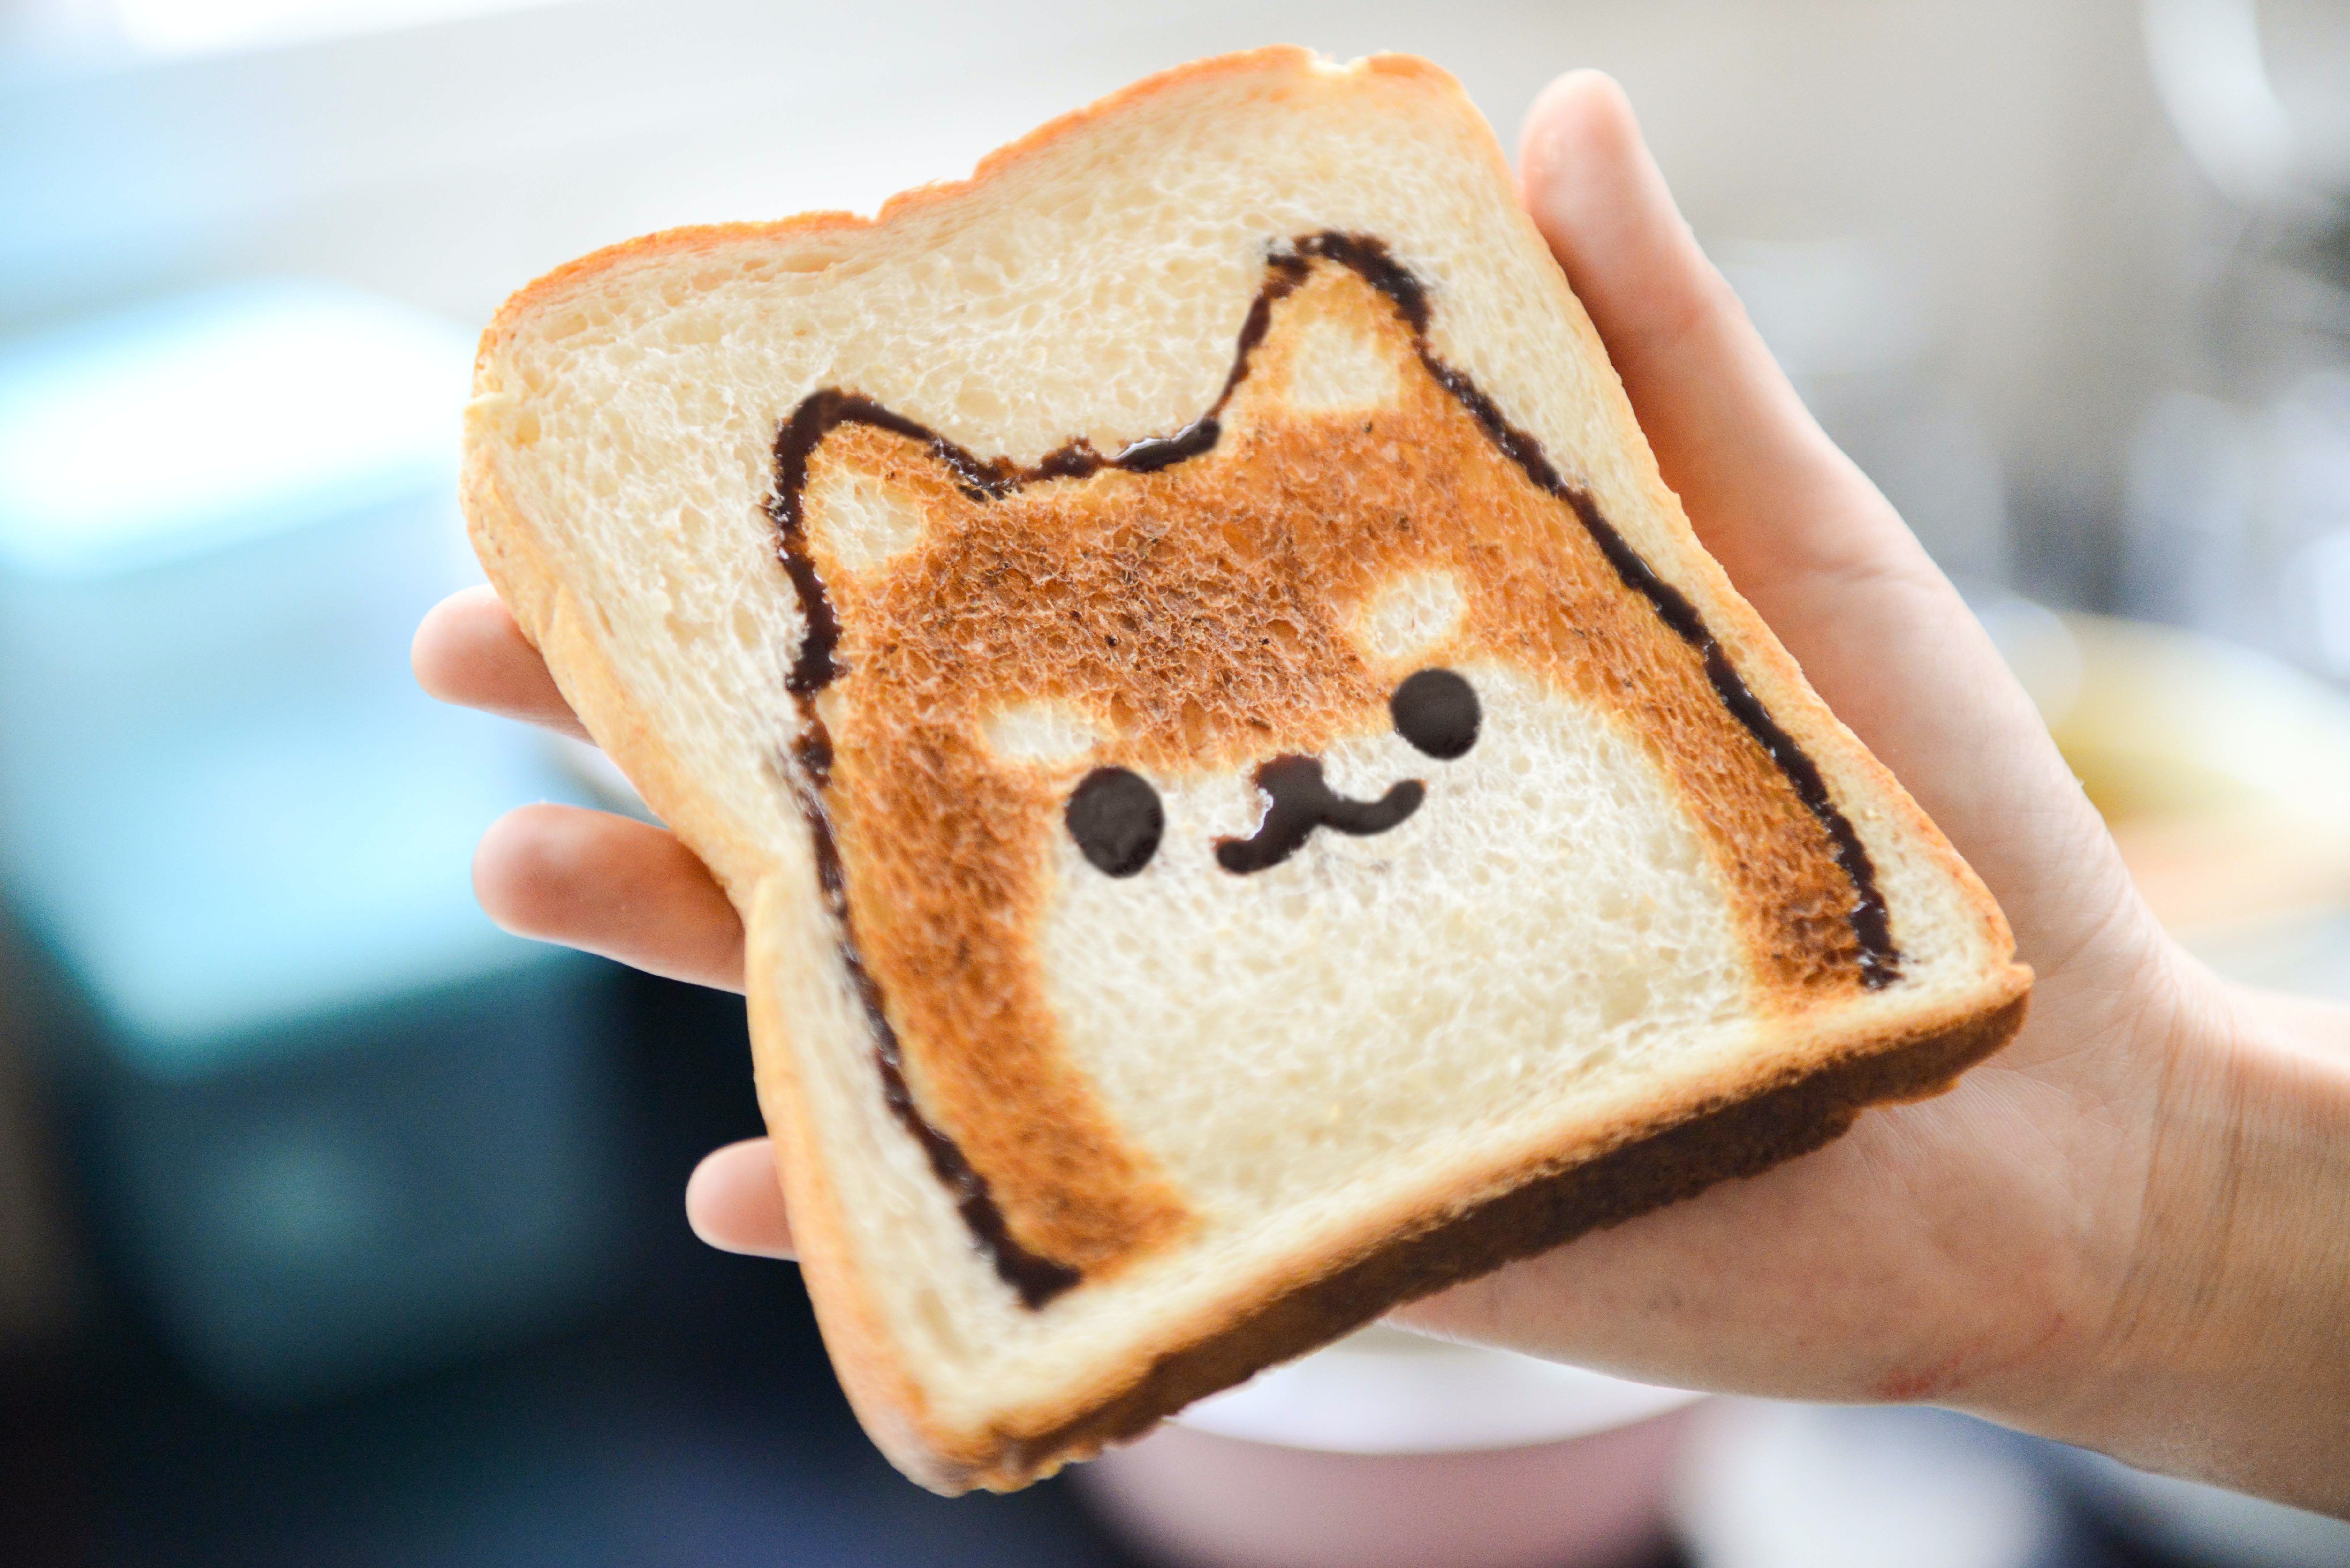 Hand holds a slice of bread toasted and decorated to resemble a dog's face